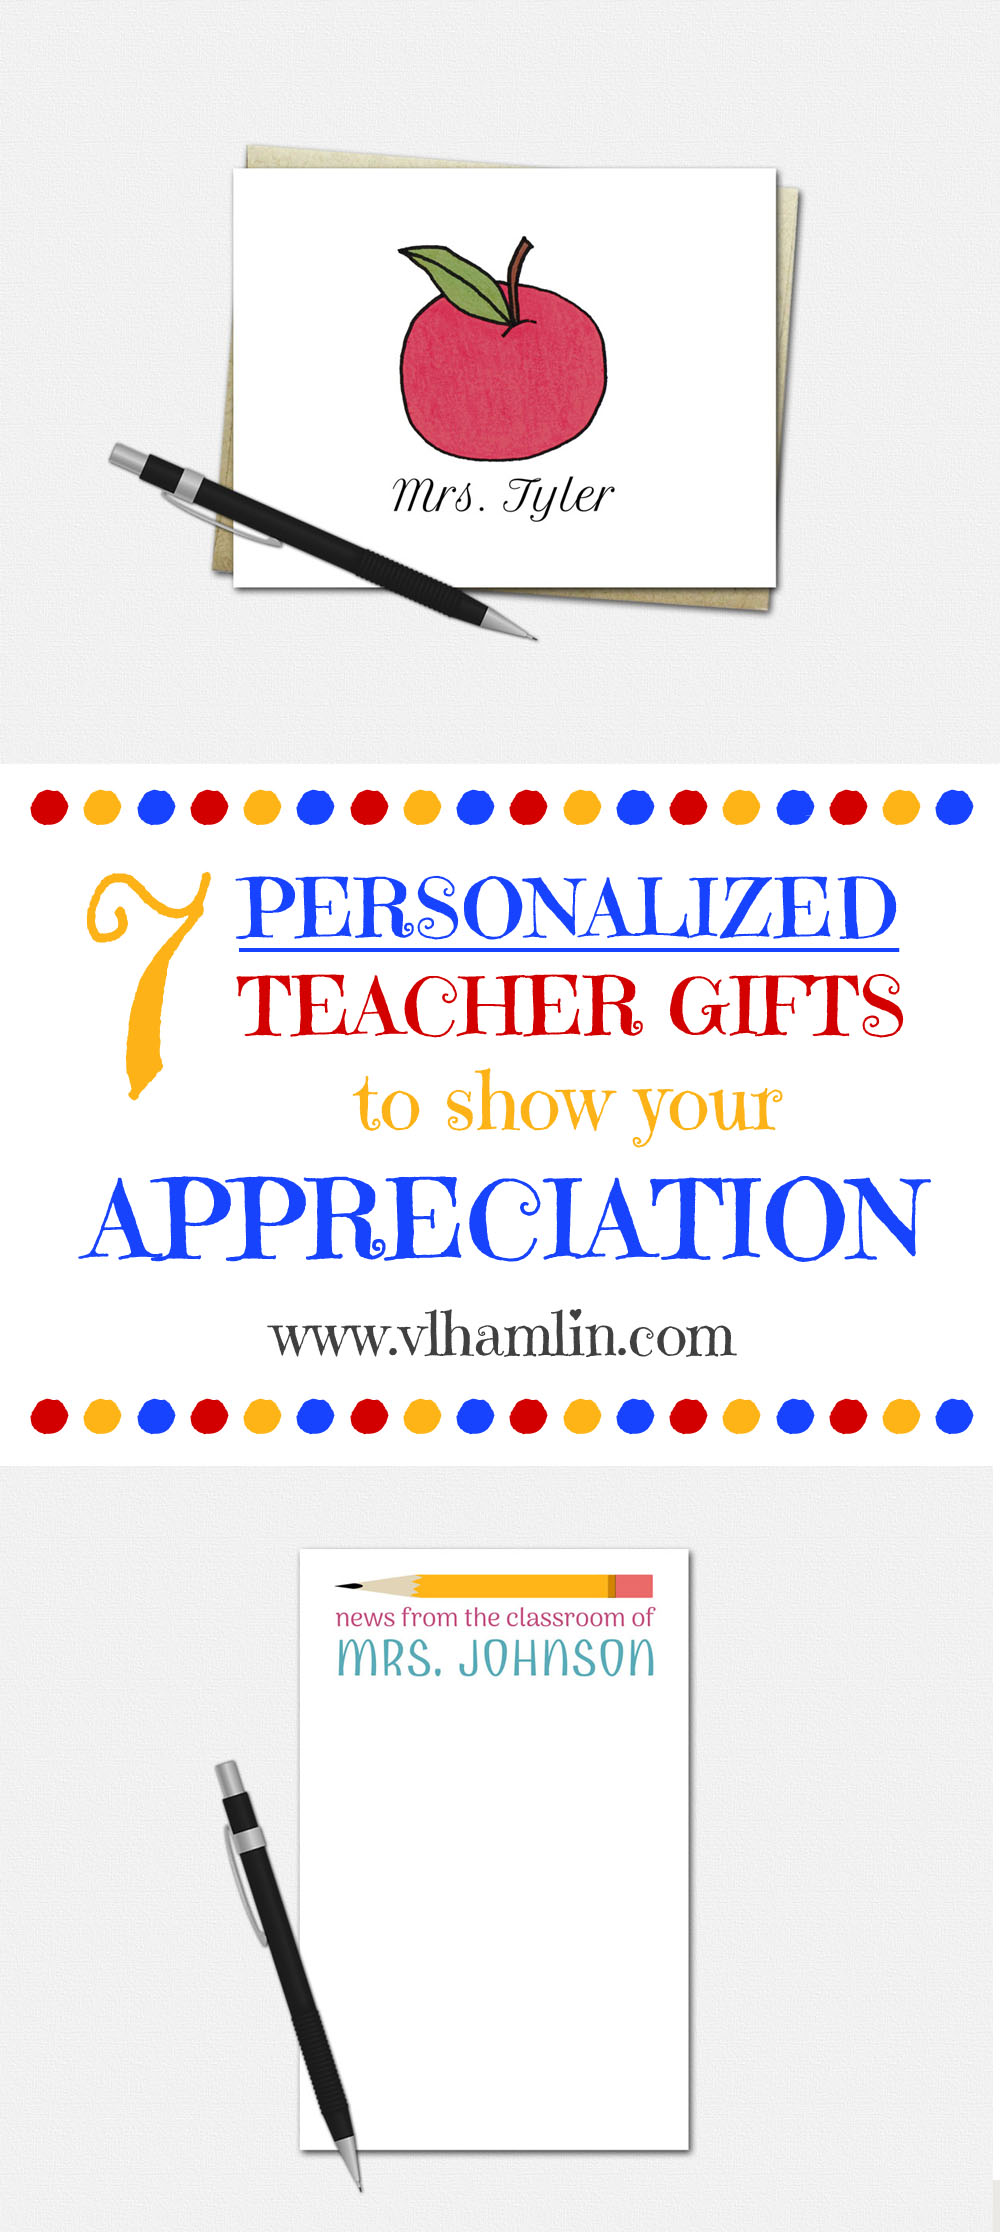 7 Personalized Teacher Gifts to Show Your Appreciation - LEAD